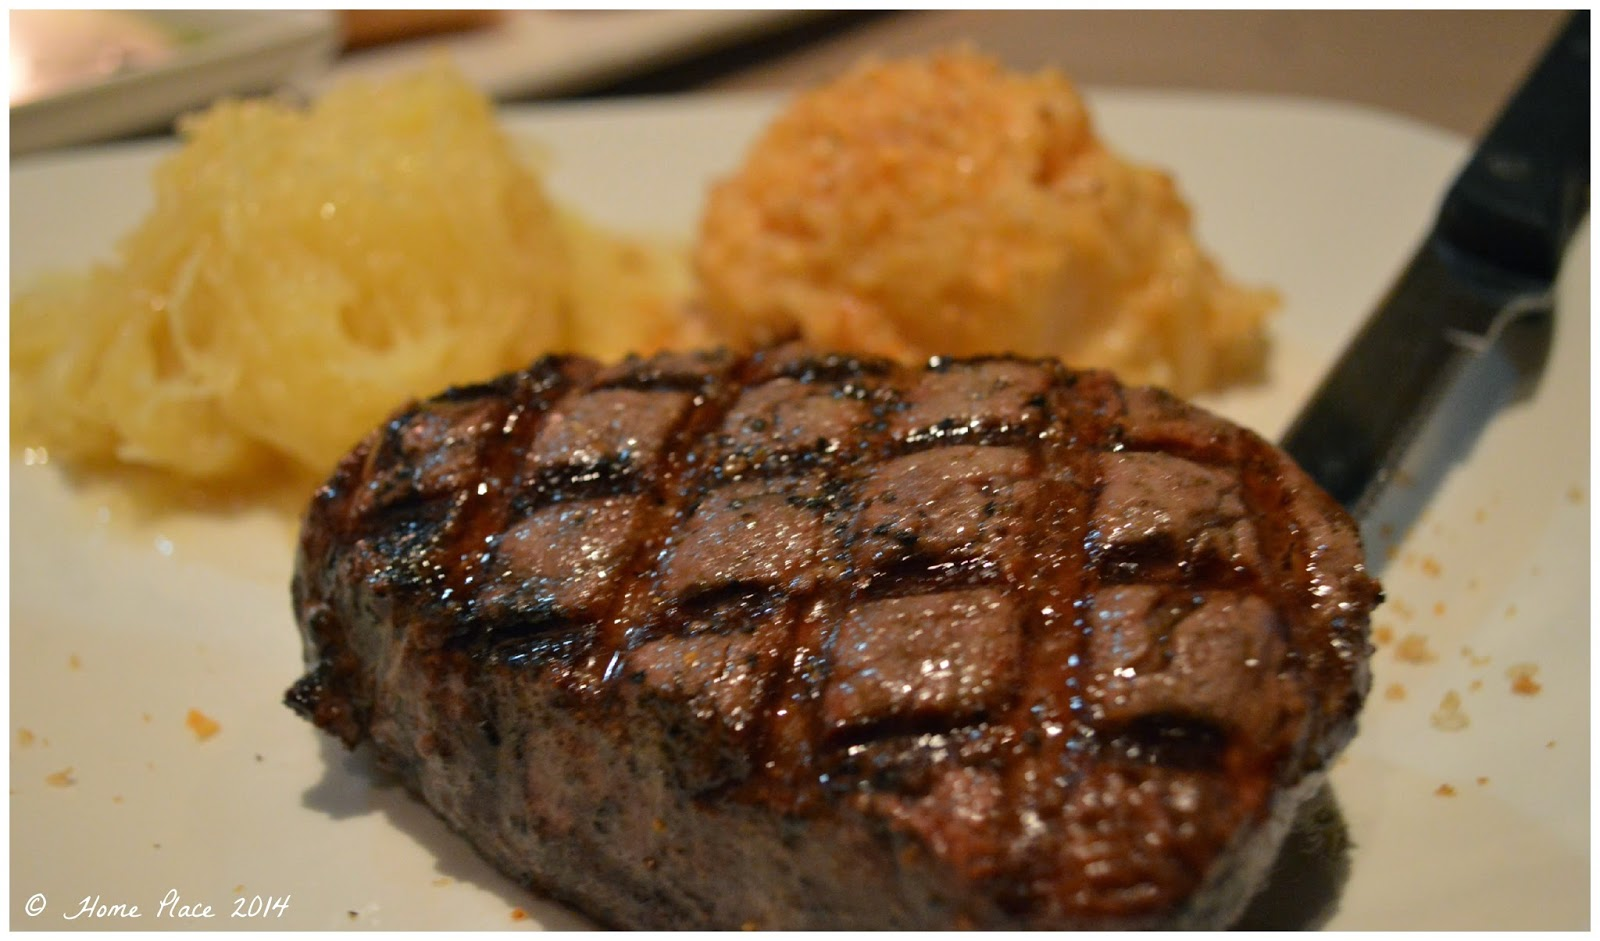 Home Place: Bonefish Grill in Newington CT - #GoColossal